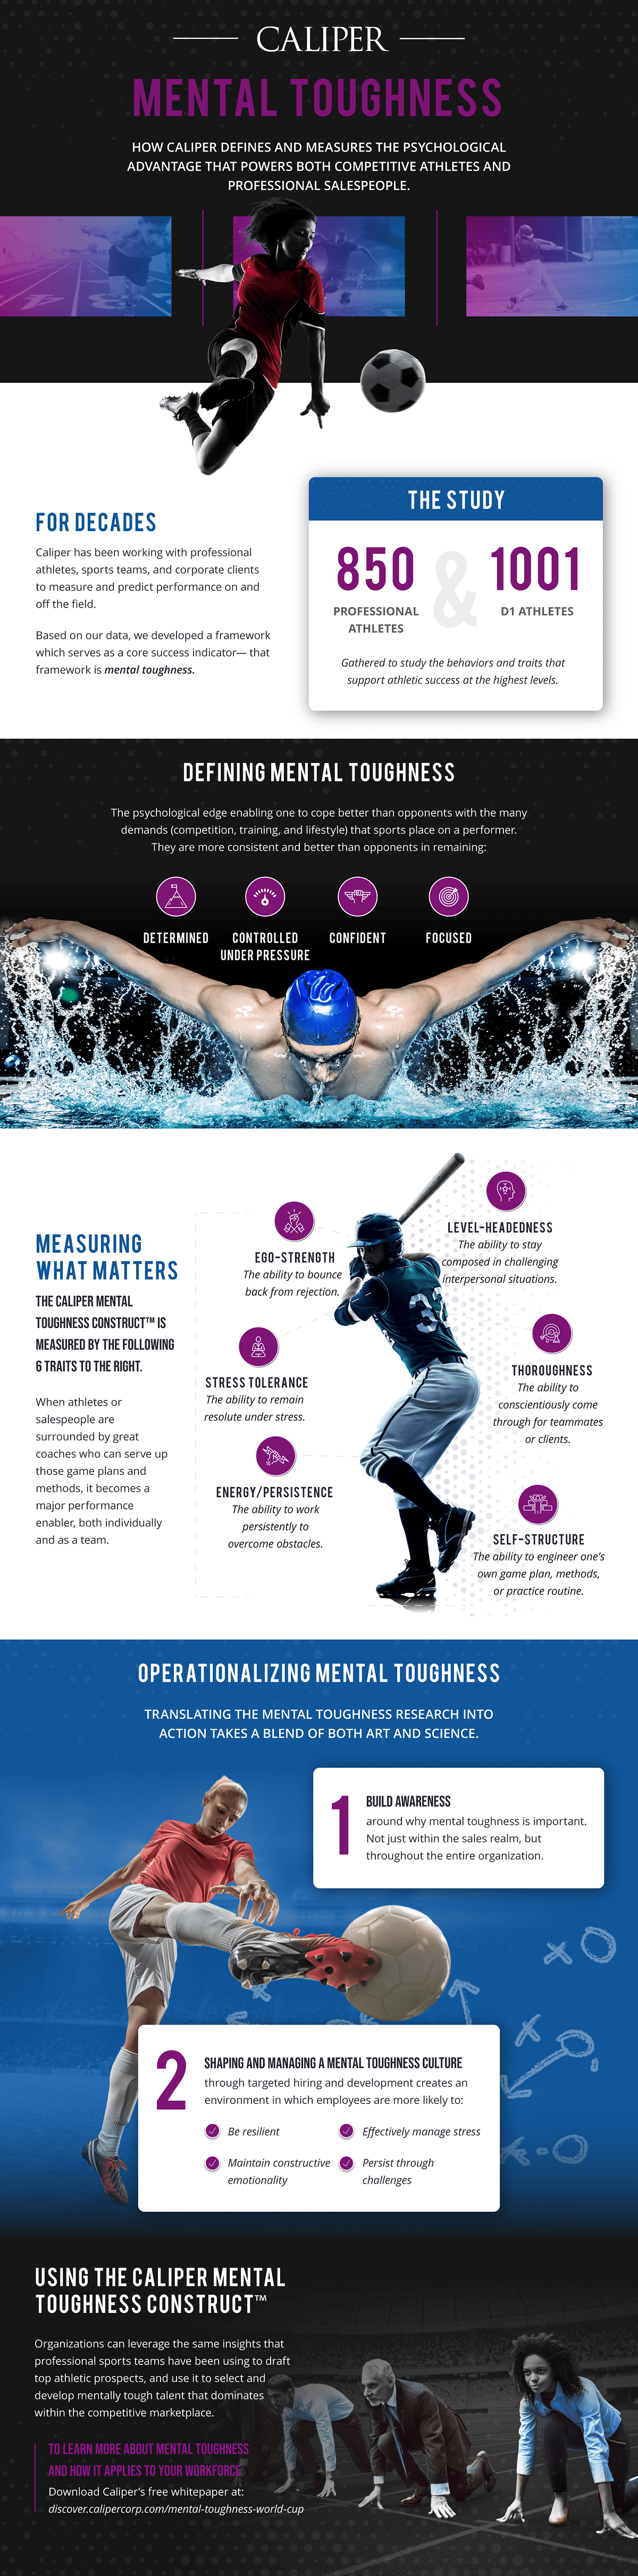 Building Mental Toughness in Your Sales Team #infographic